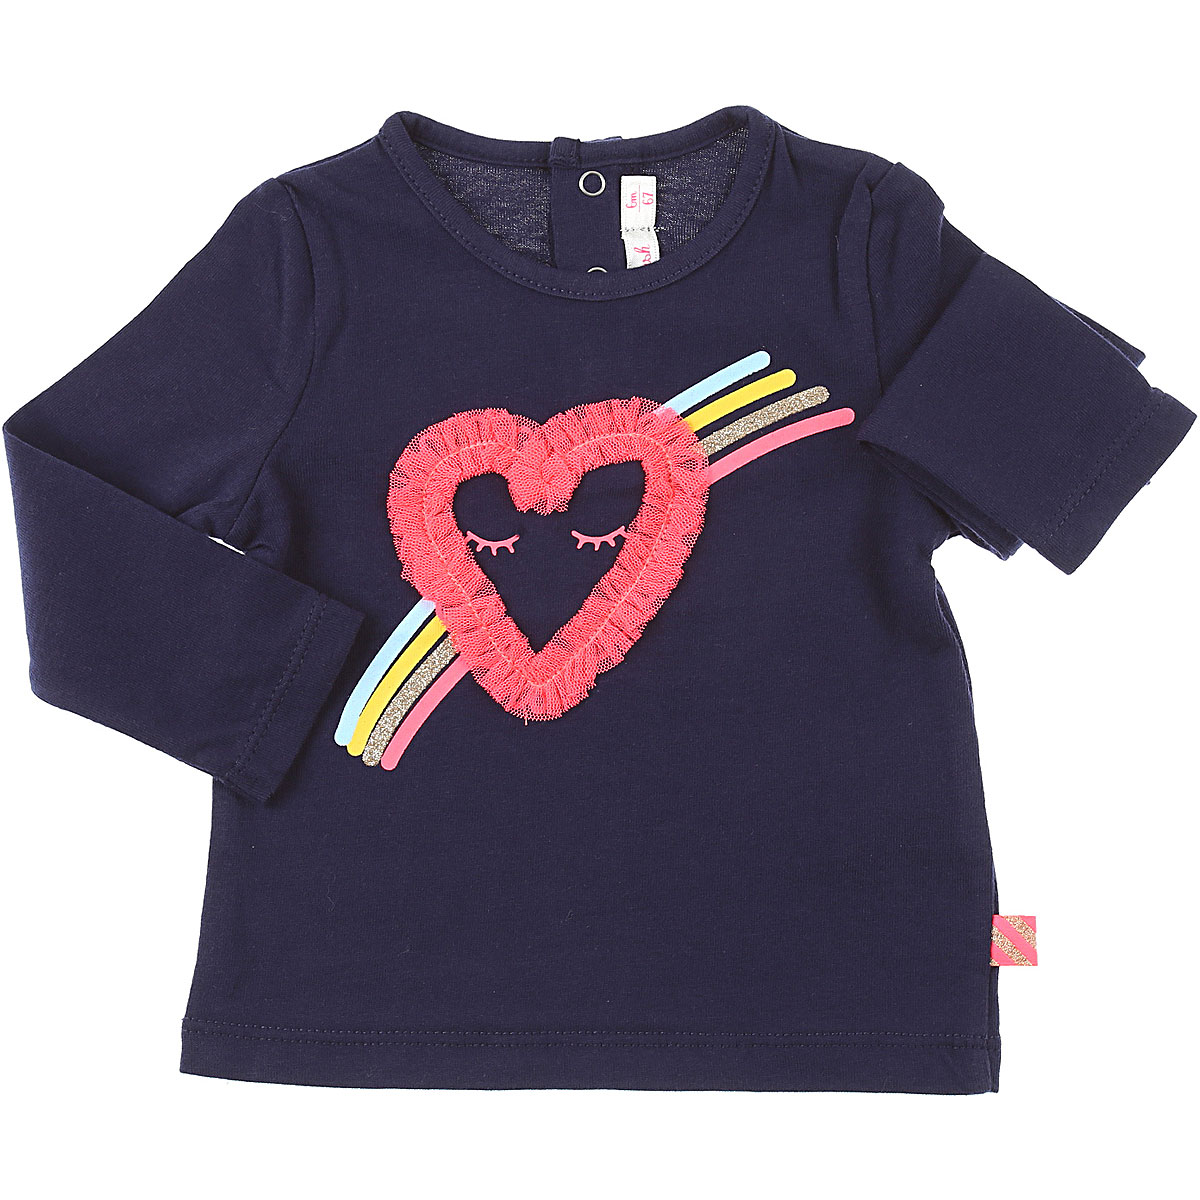 Billieblush Baby T-Shirt for Girls On Sale, Dark Midnight Blue, Cotton, 2019, 12M 2Y